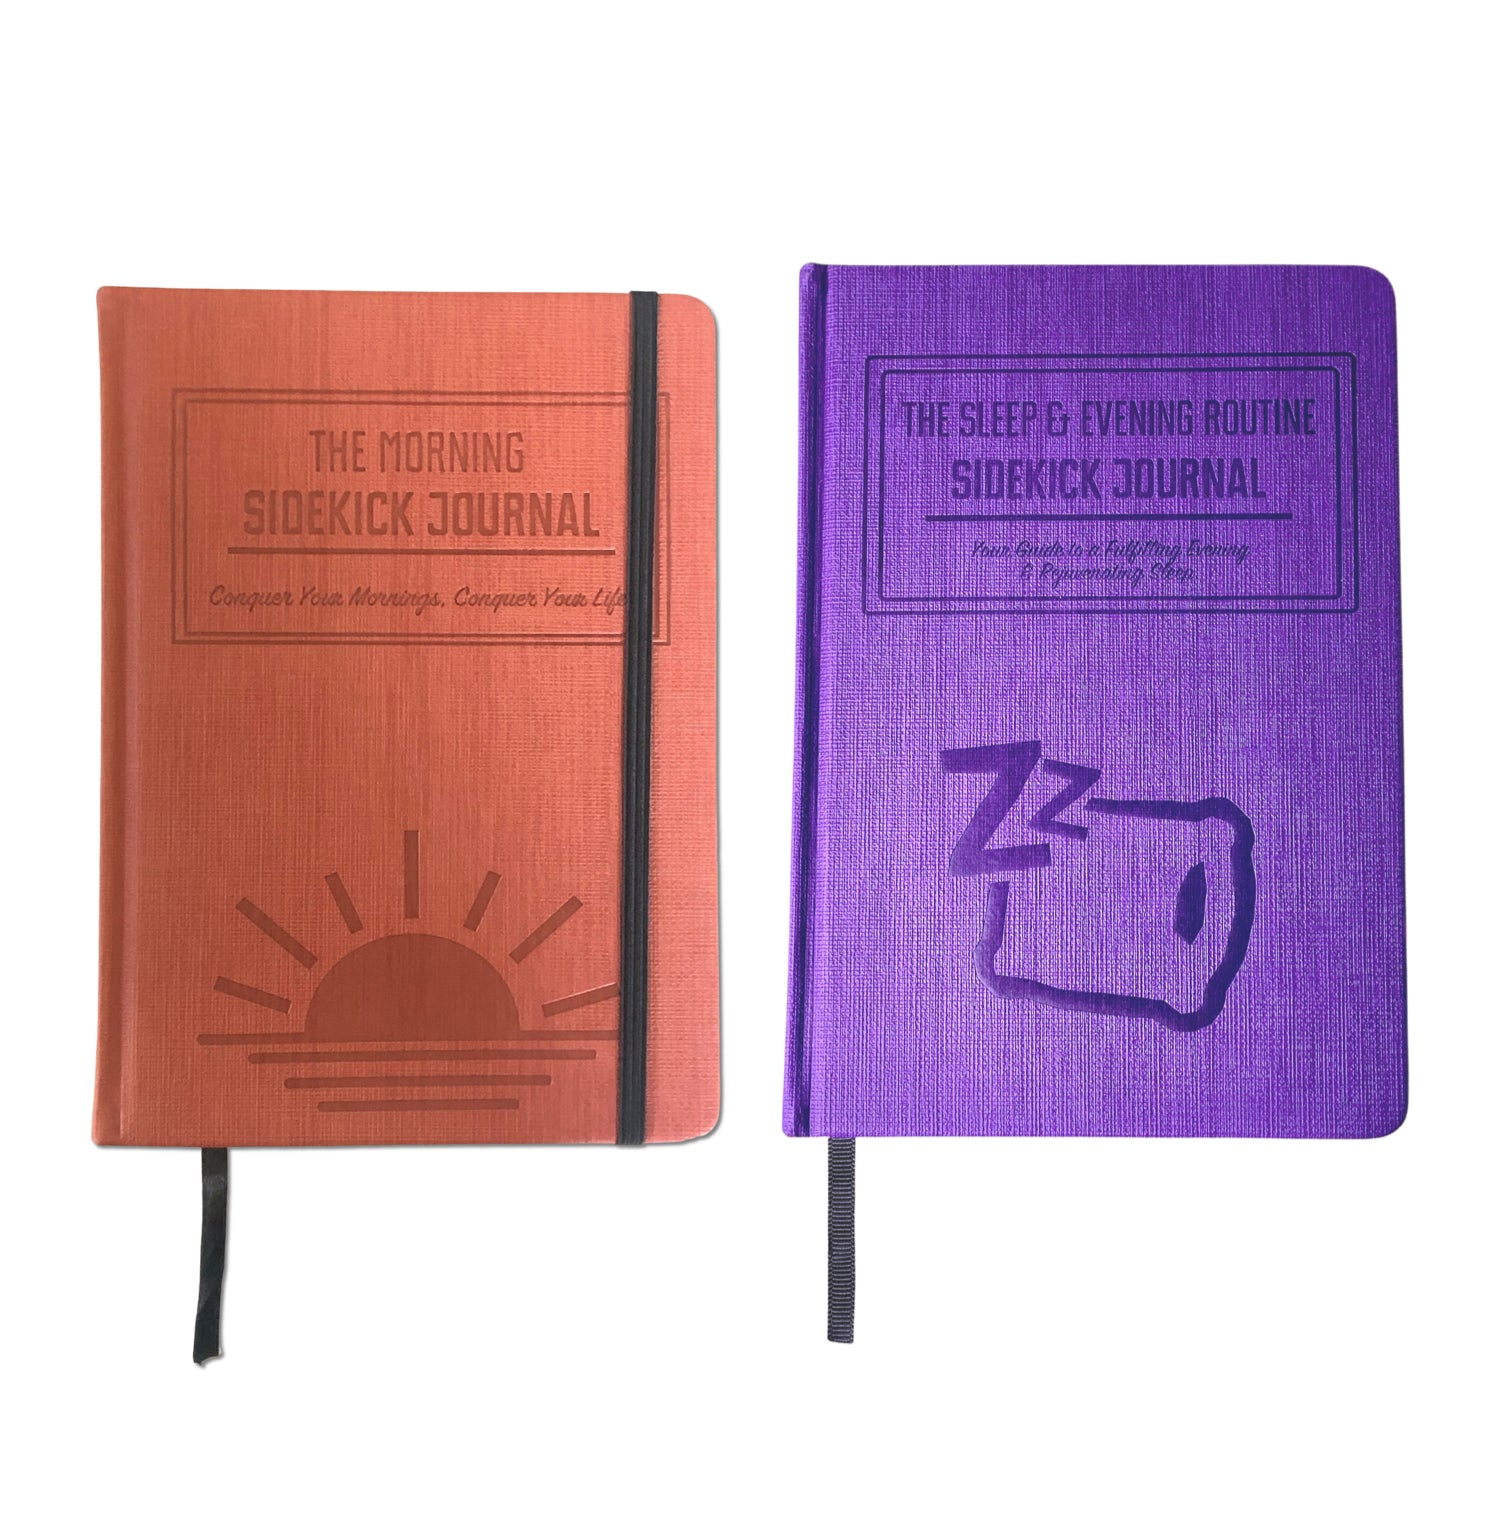 Bundle: Morning Sidekick Journal + Sleep & Evening Routine Sidekick Journal